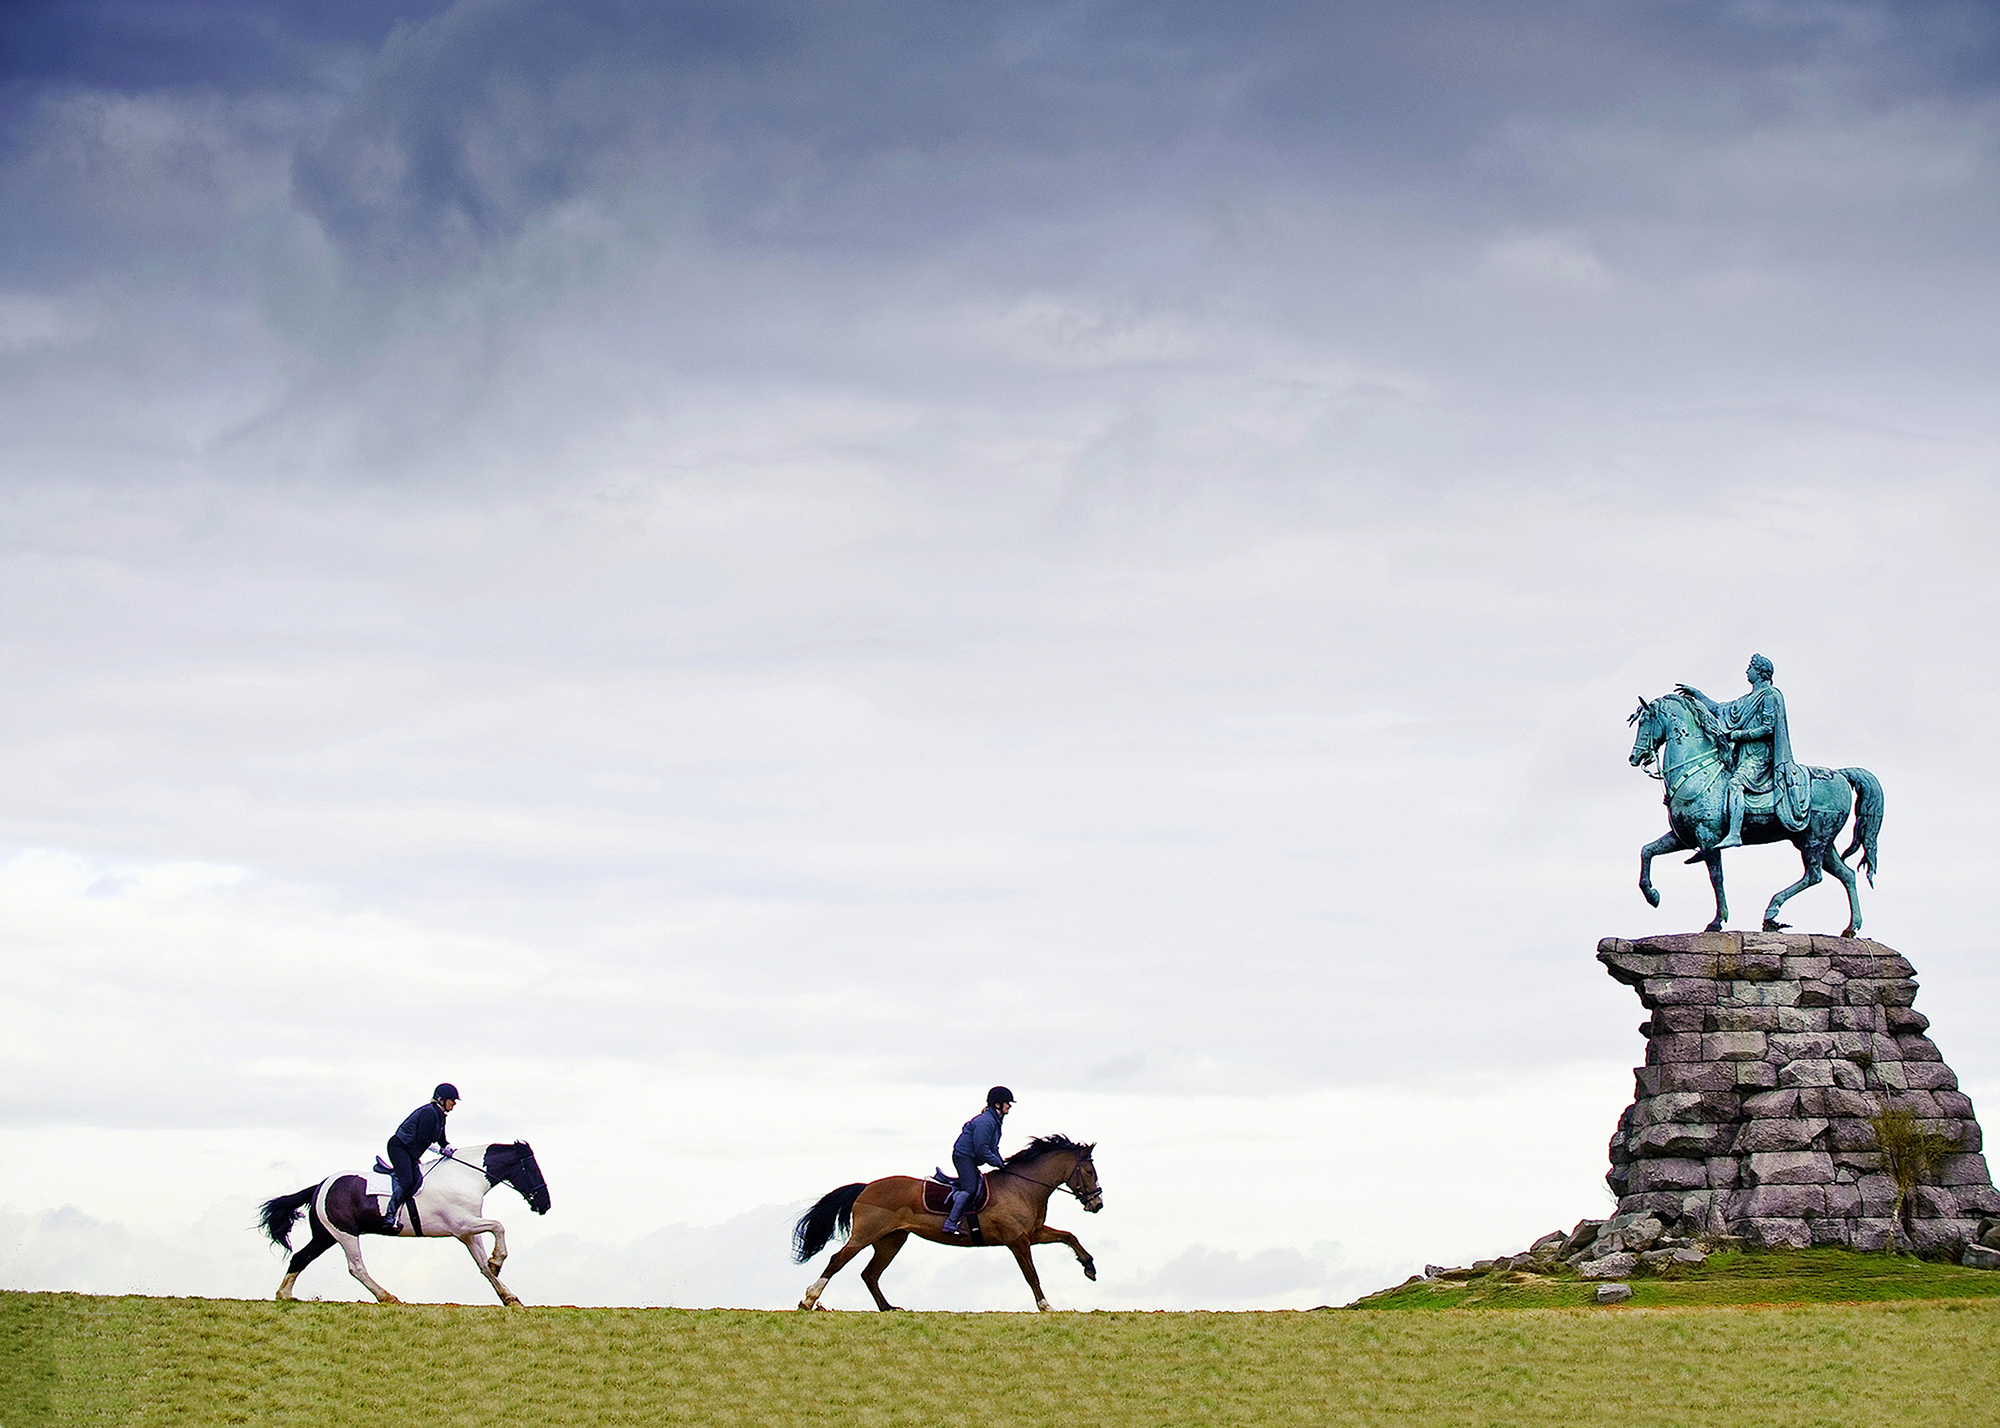 Rider gallops past the Copper Horse, a statue of King George III